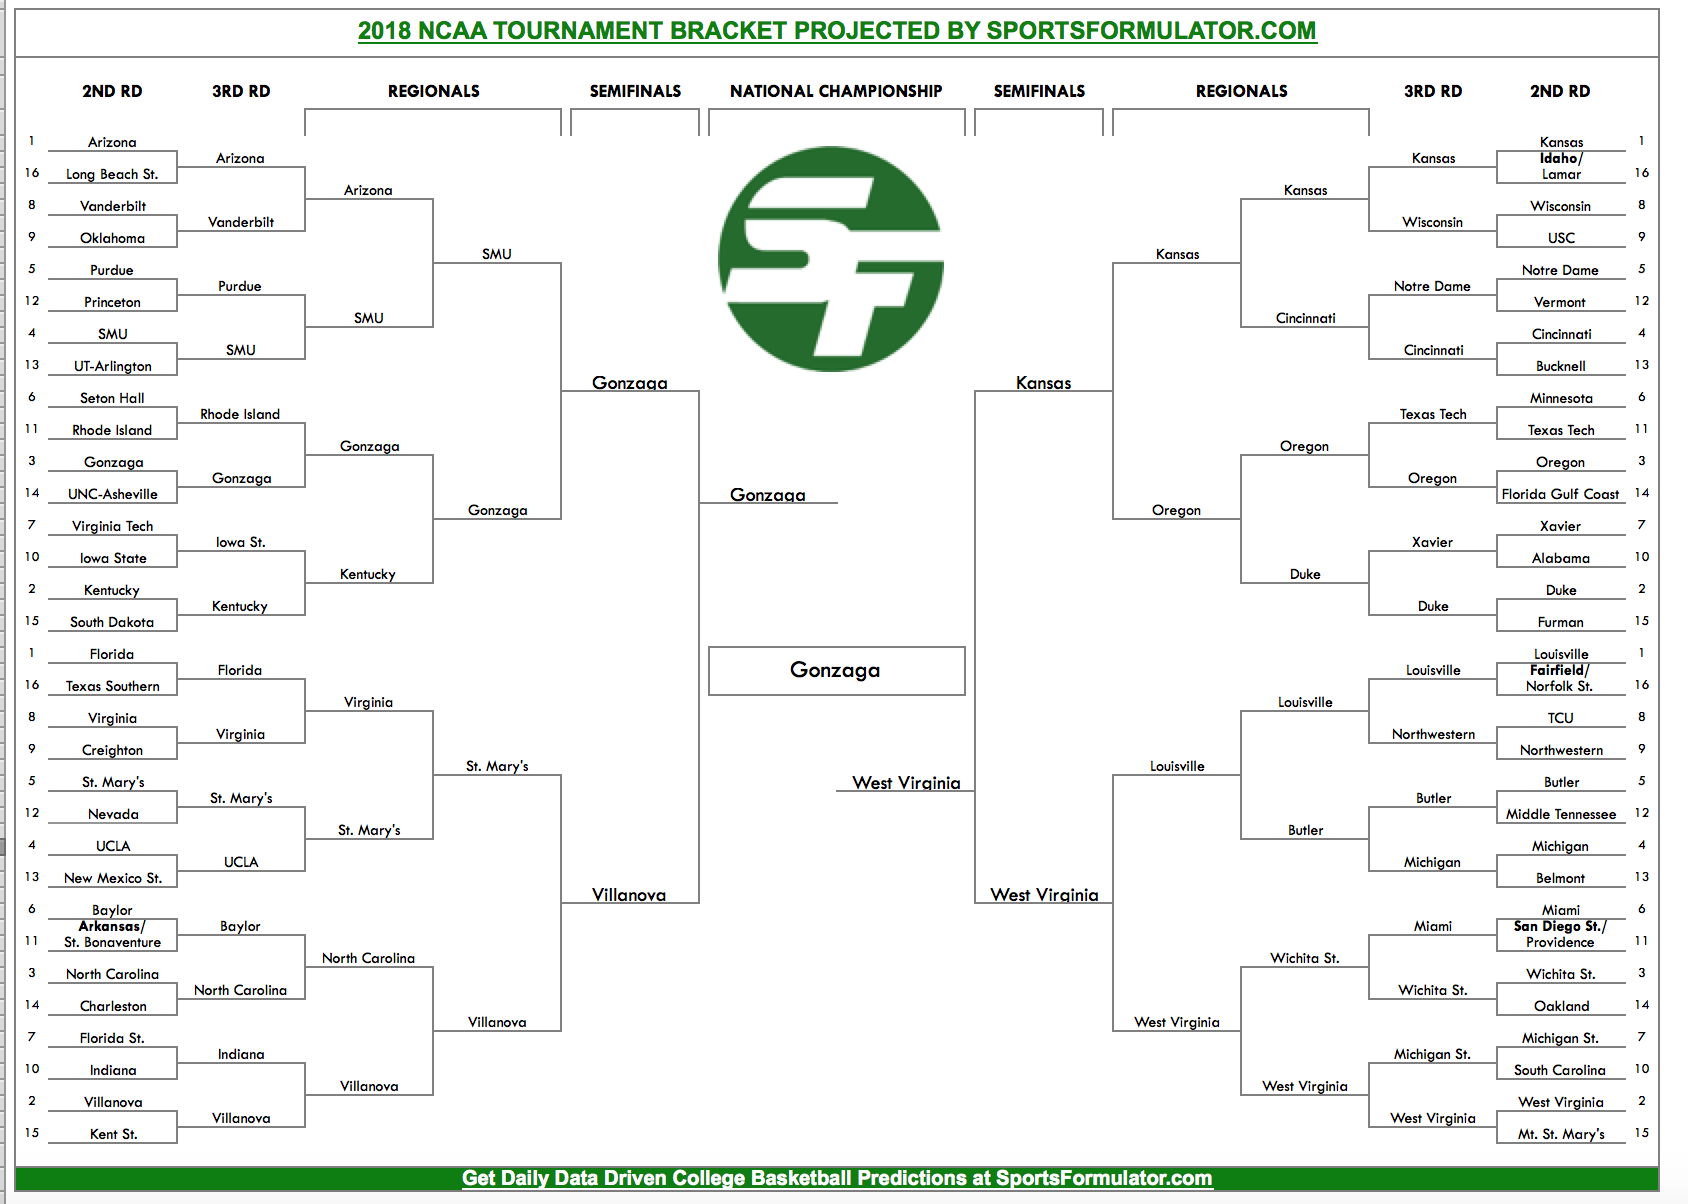 2018 NCAA Tournament Predictions - April 7, 2017 - SportsFormulator